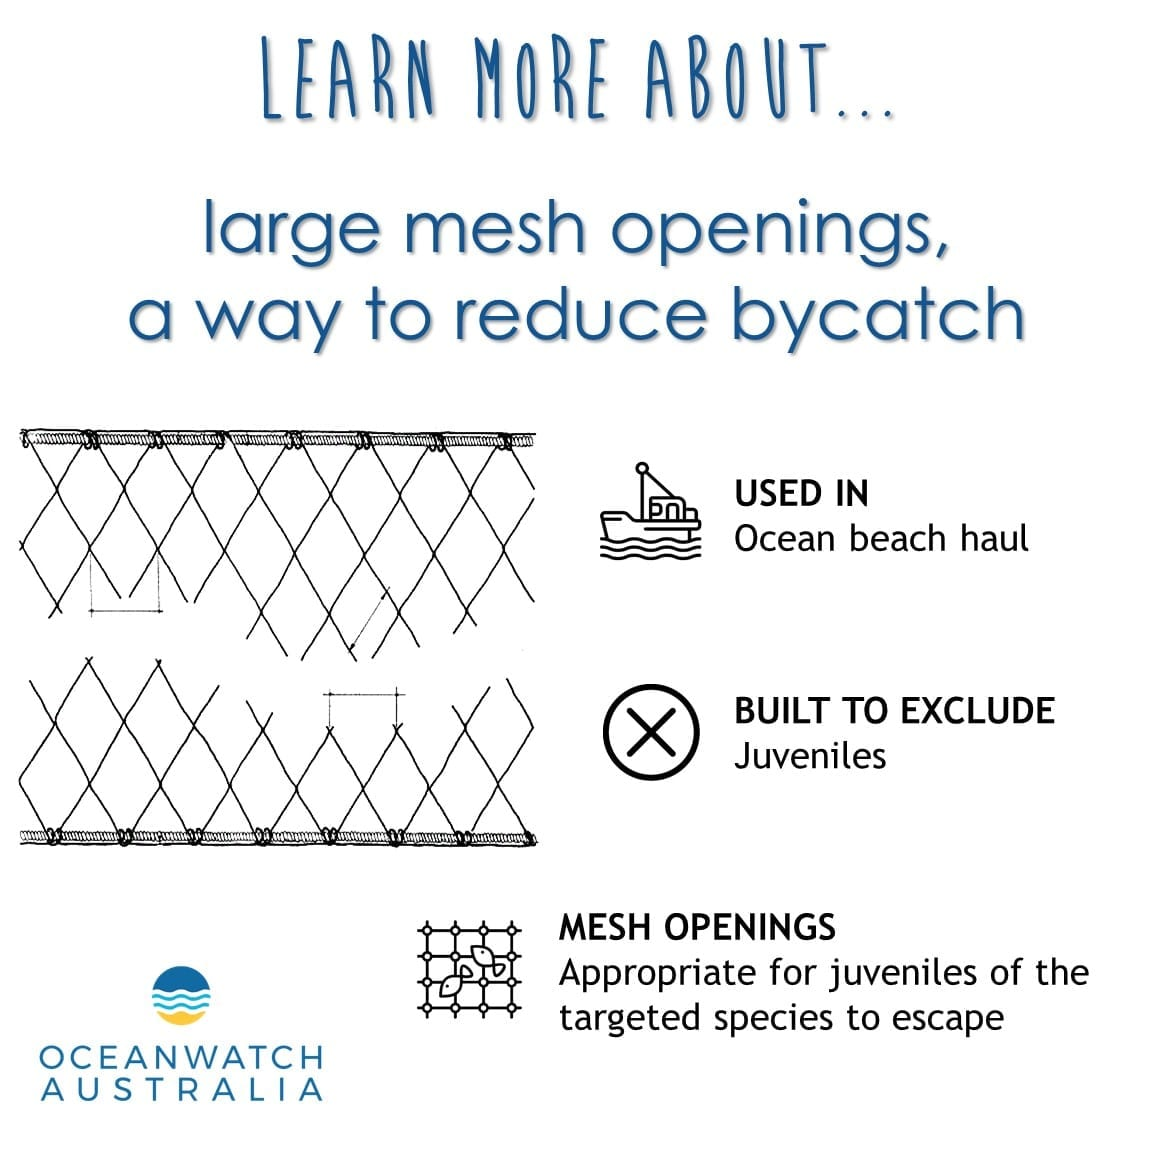 To reduce the bycatch of juveniles, and non-target species the mesh netting used in the ocean beach haul fishery is altered to have larger mesh openings depending on size and morphology of the targeted fish species. The size and shape of the mesh openings, as well as the type of netting material are all important to ensure only targeted species are captured. This method is useful when professional fishermen are targeting demersal fish like Yellowfin Bream and Luderick.